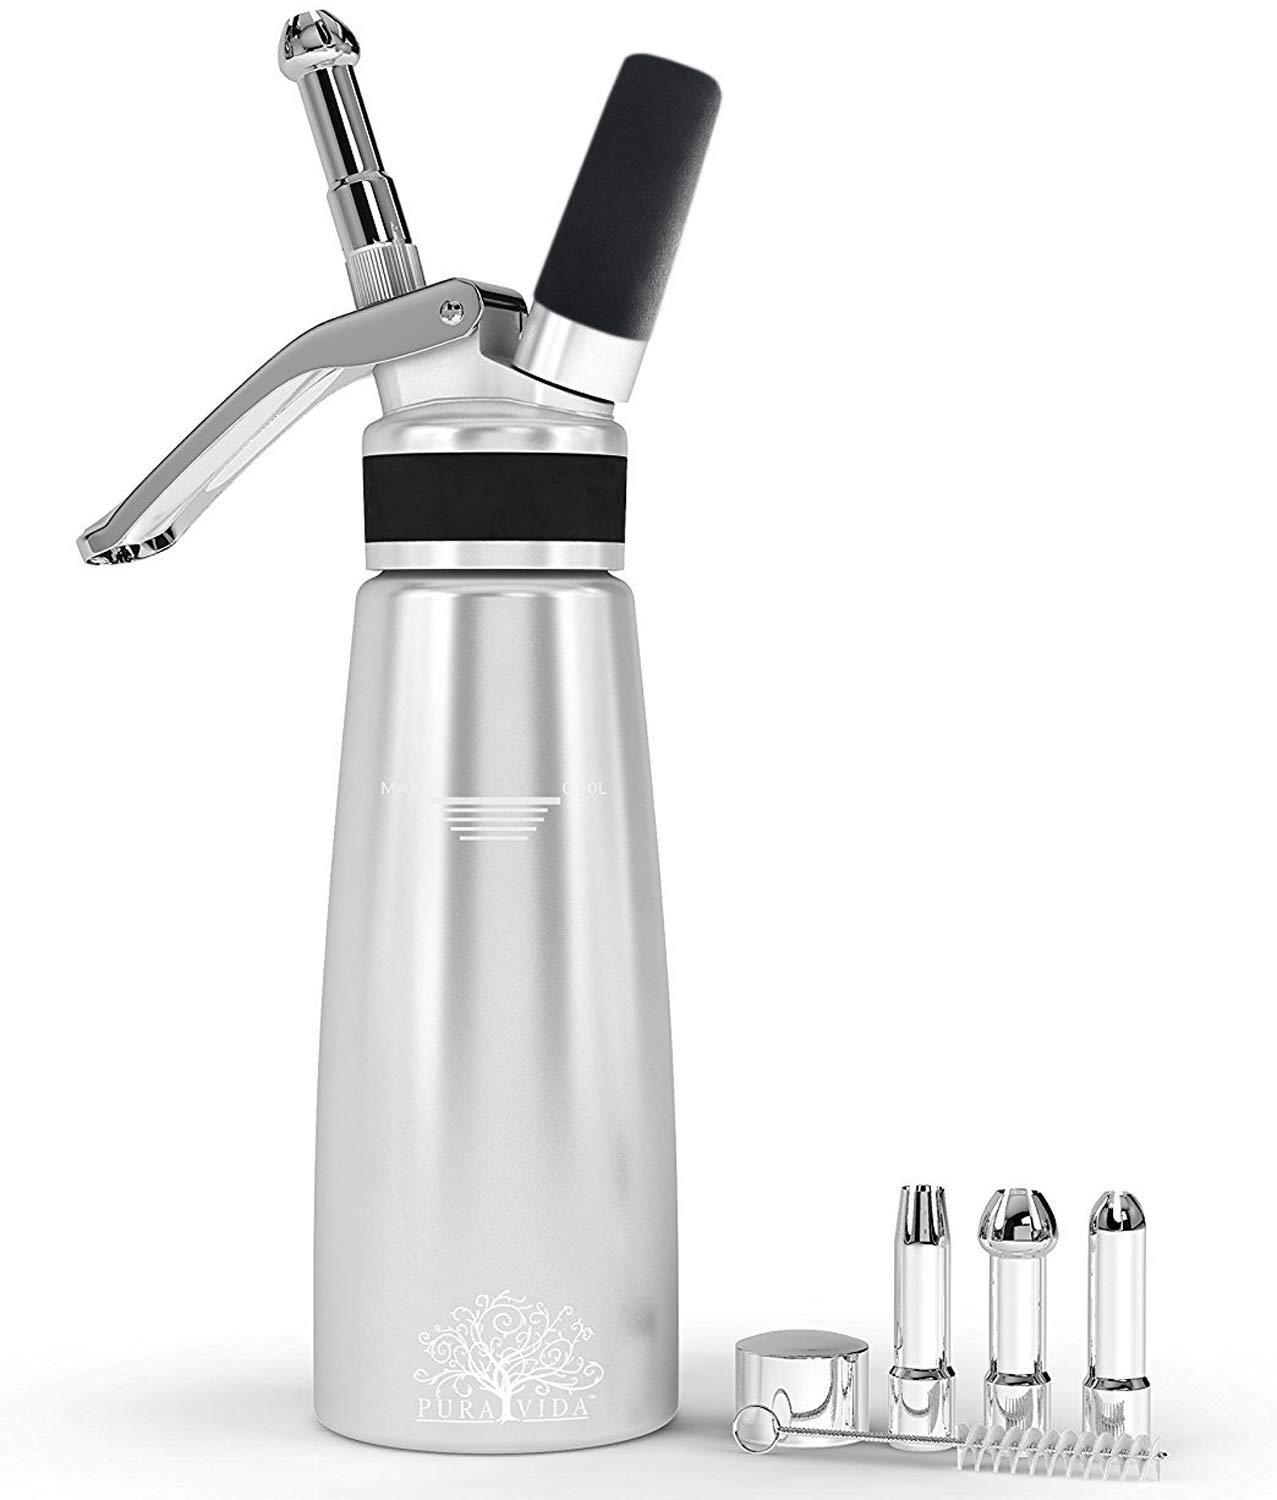 Pura Vida Professional Whipped Cream Dispenser Stainless Steel Decorating Tips - Durable Aluminum Whipped Cream Canister - Perfect Cream Whipper Maker for Gift, Dishwasher Safe Whip Cream Dispensers by Pura Vida